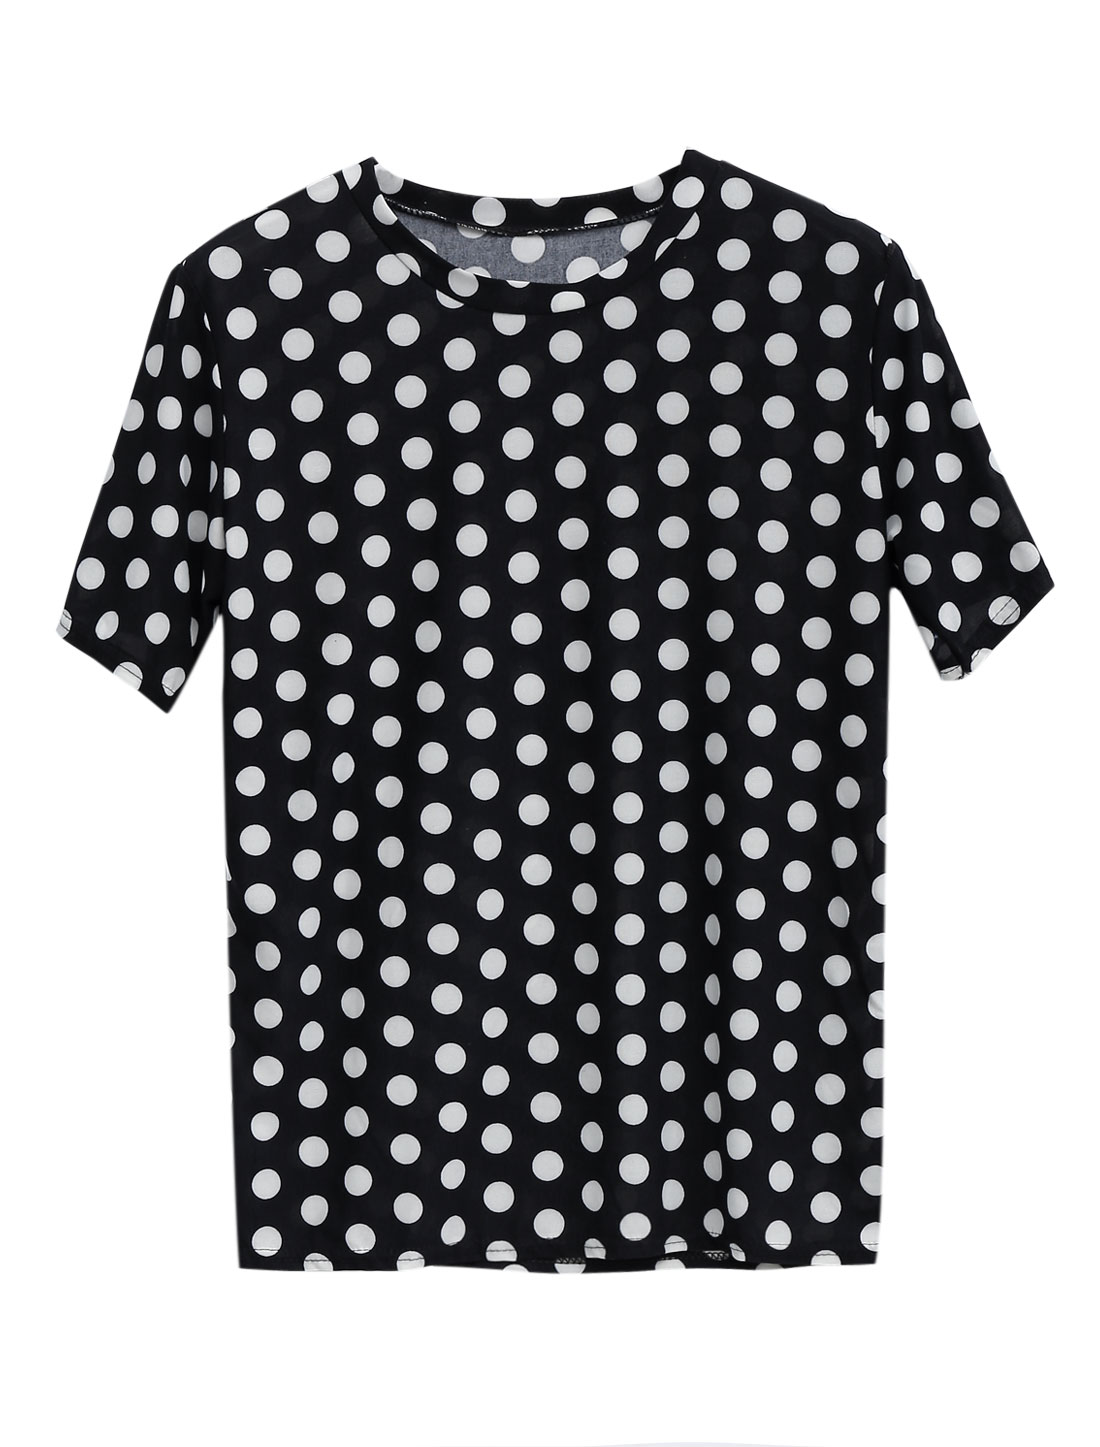 Lady Summer Short Sleeve Dots Pattern Tunic Top Black XS